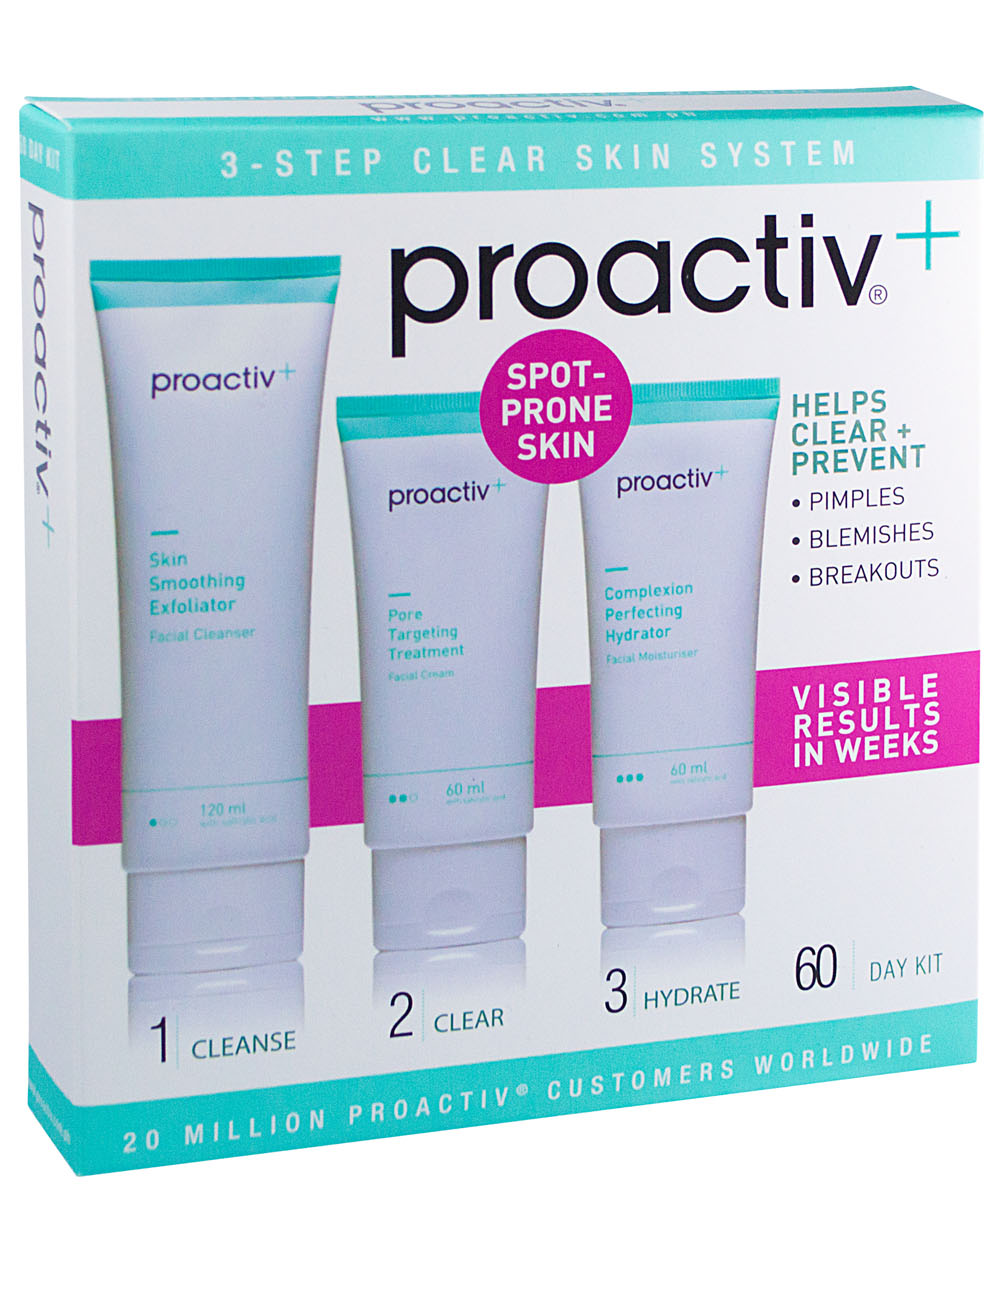 Skincare Tips: Stick with your Healthy Routine + Proactiv+ 3-Step Clear Skin System